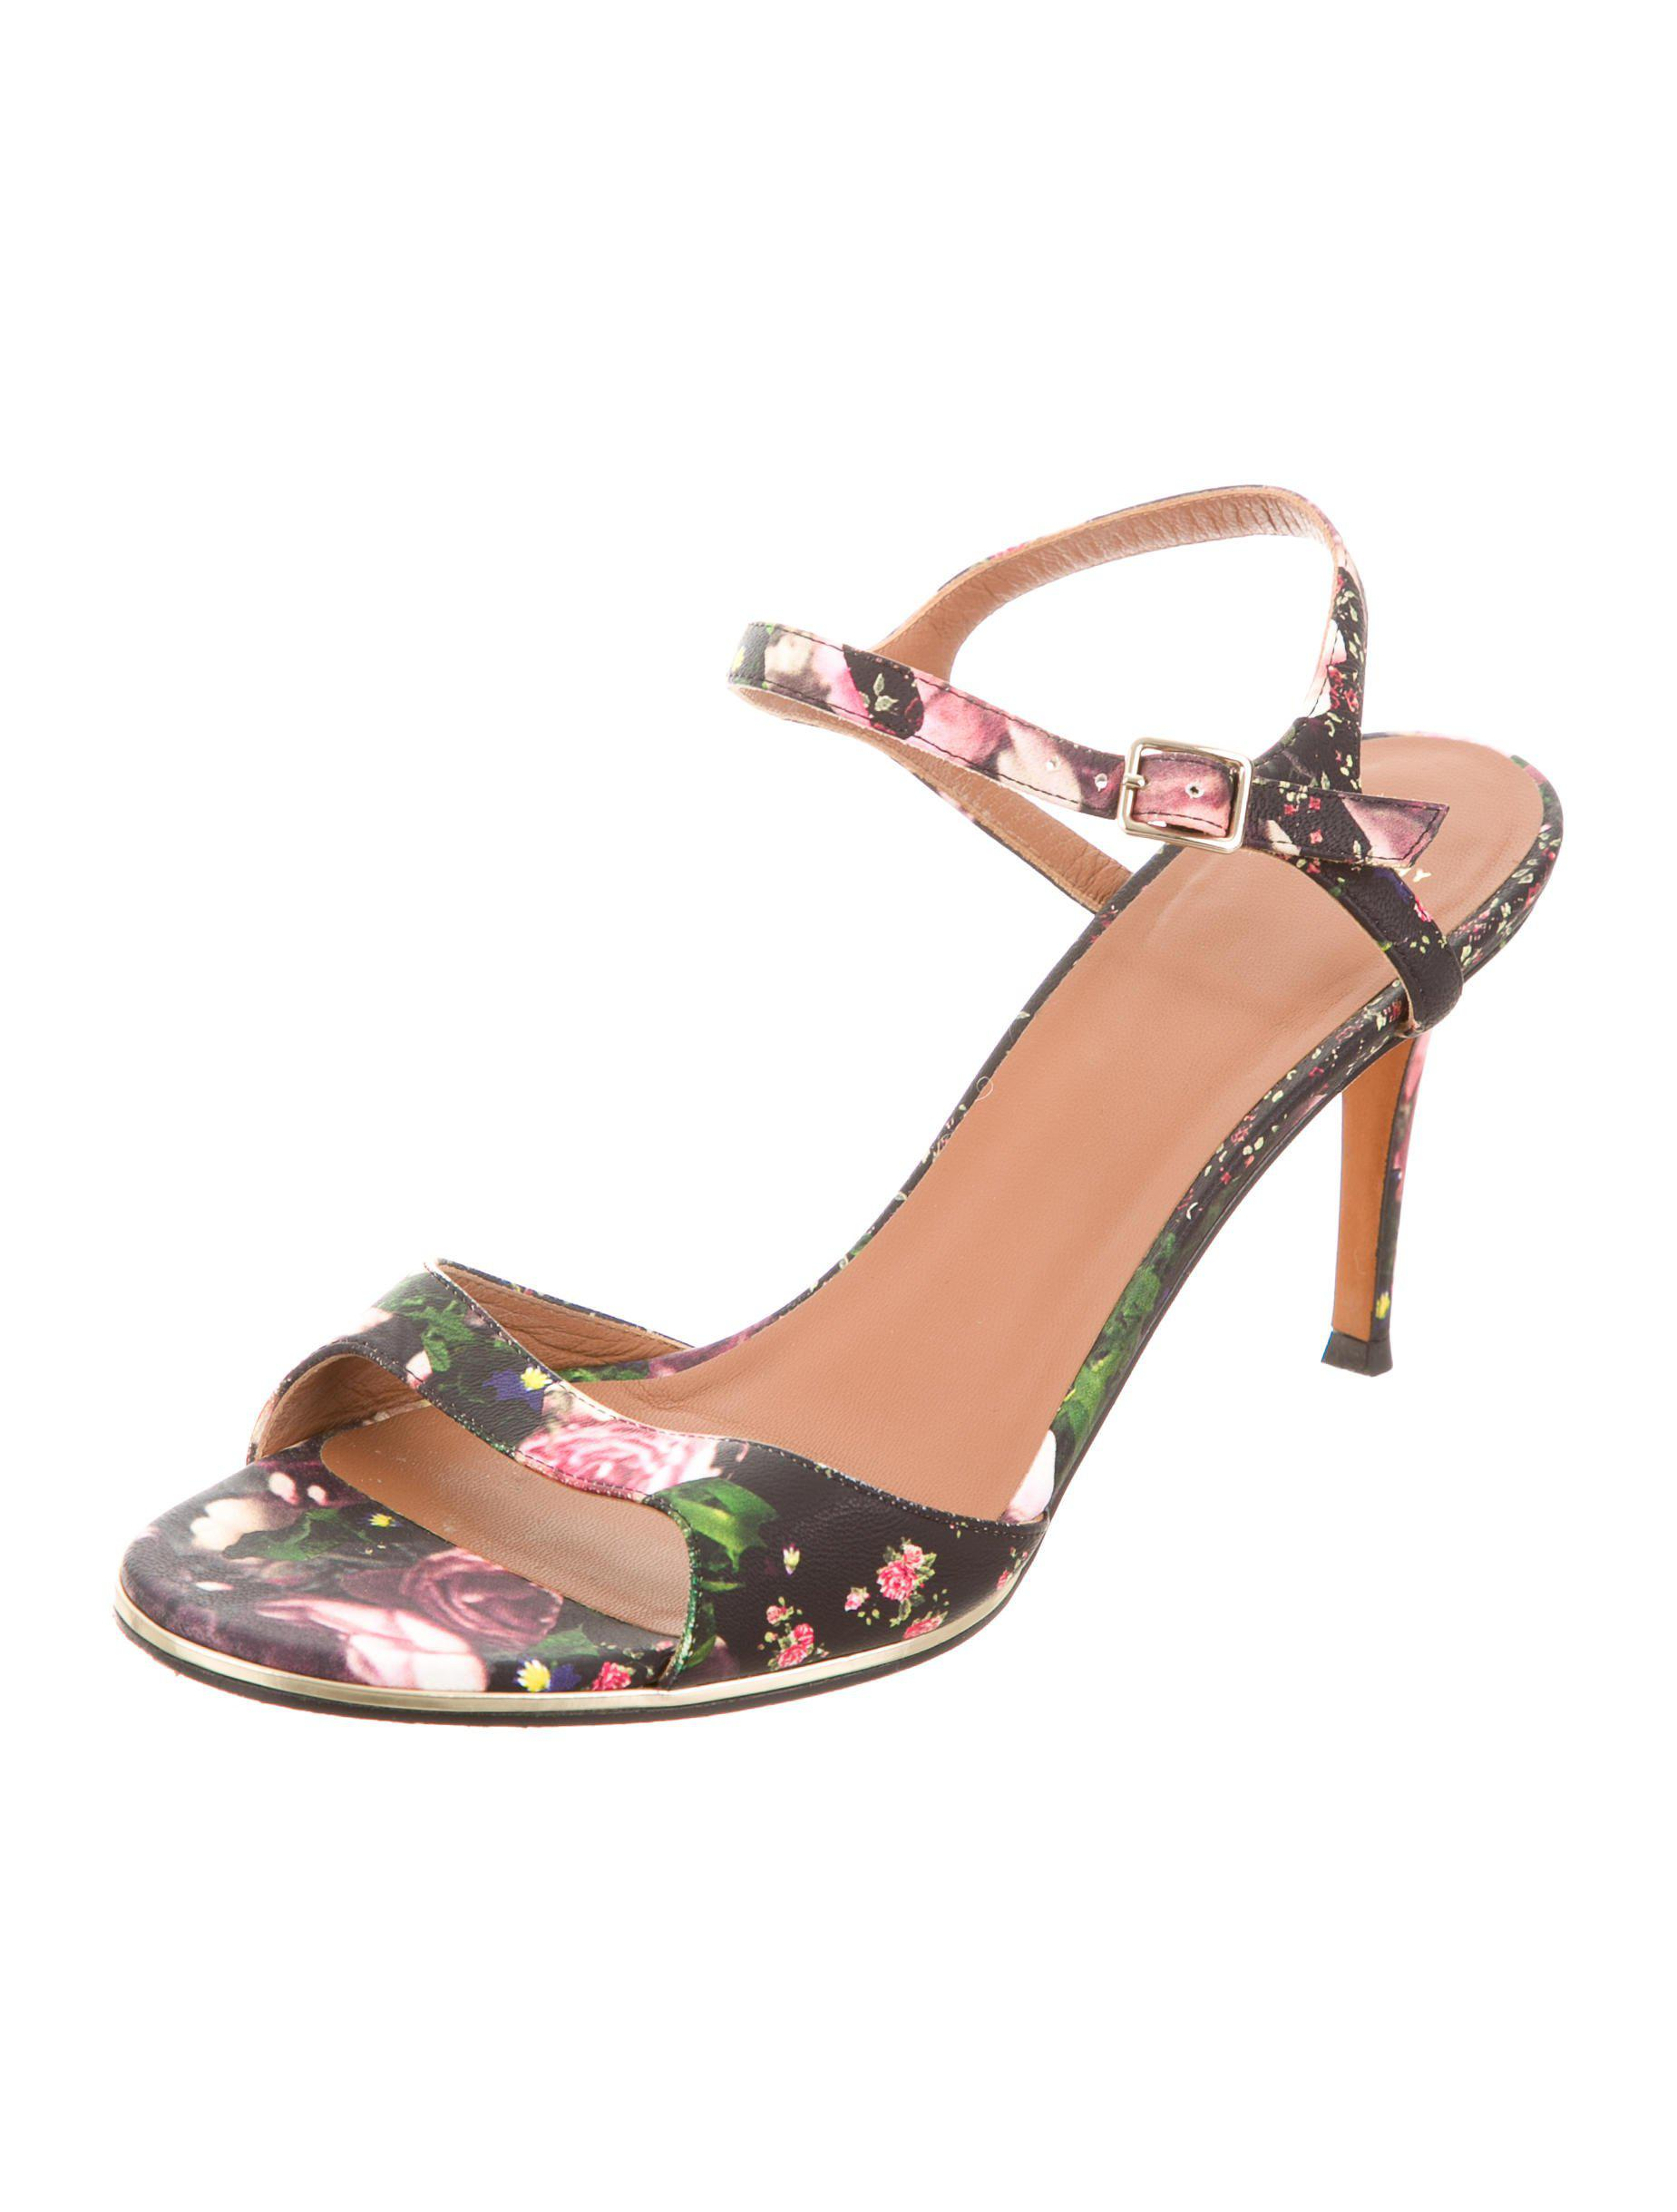 buy cheap ebay Givenchy Floral Print Ankle Strap Sandals discount 2014 6X3oaEd1